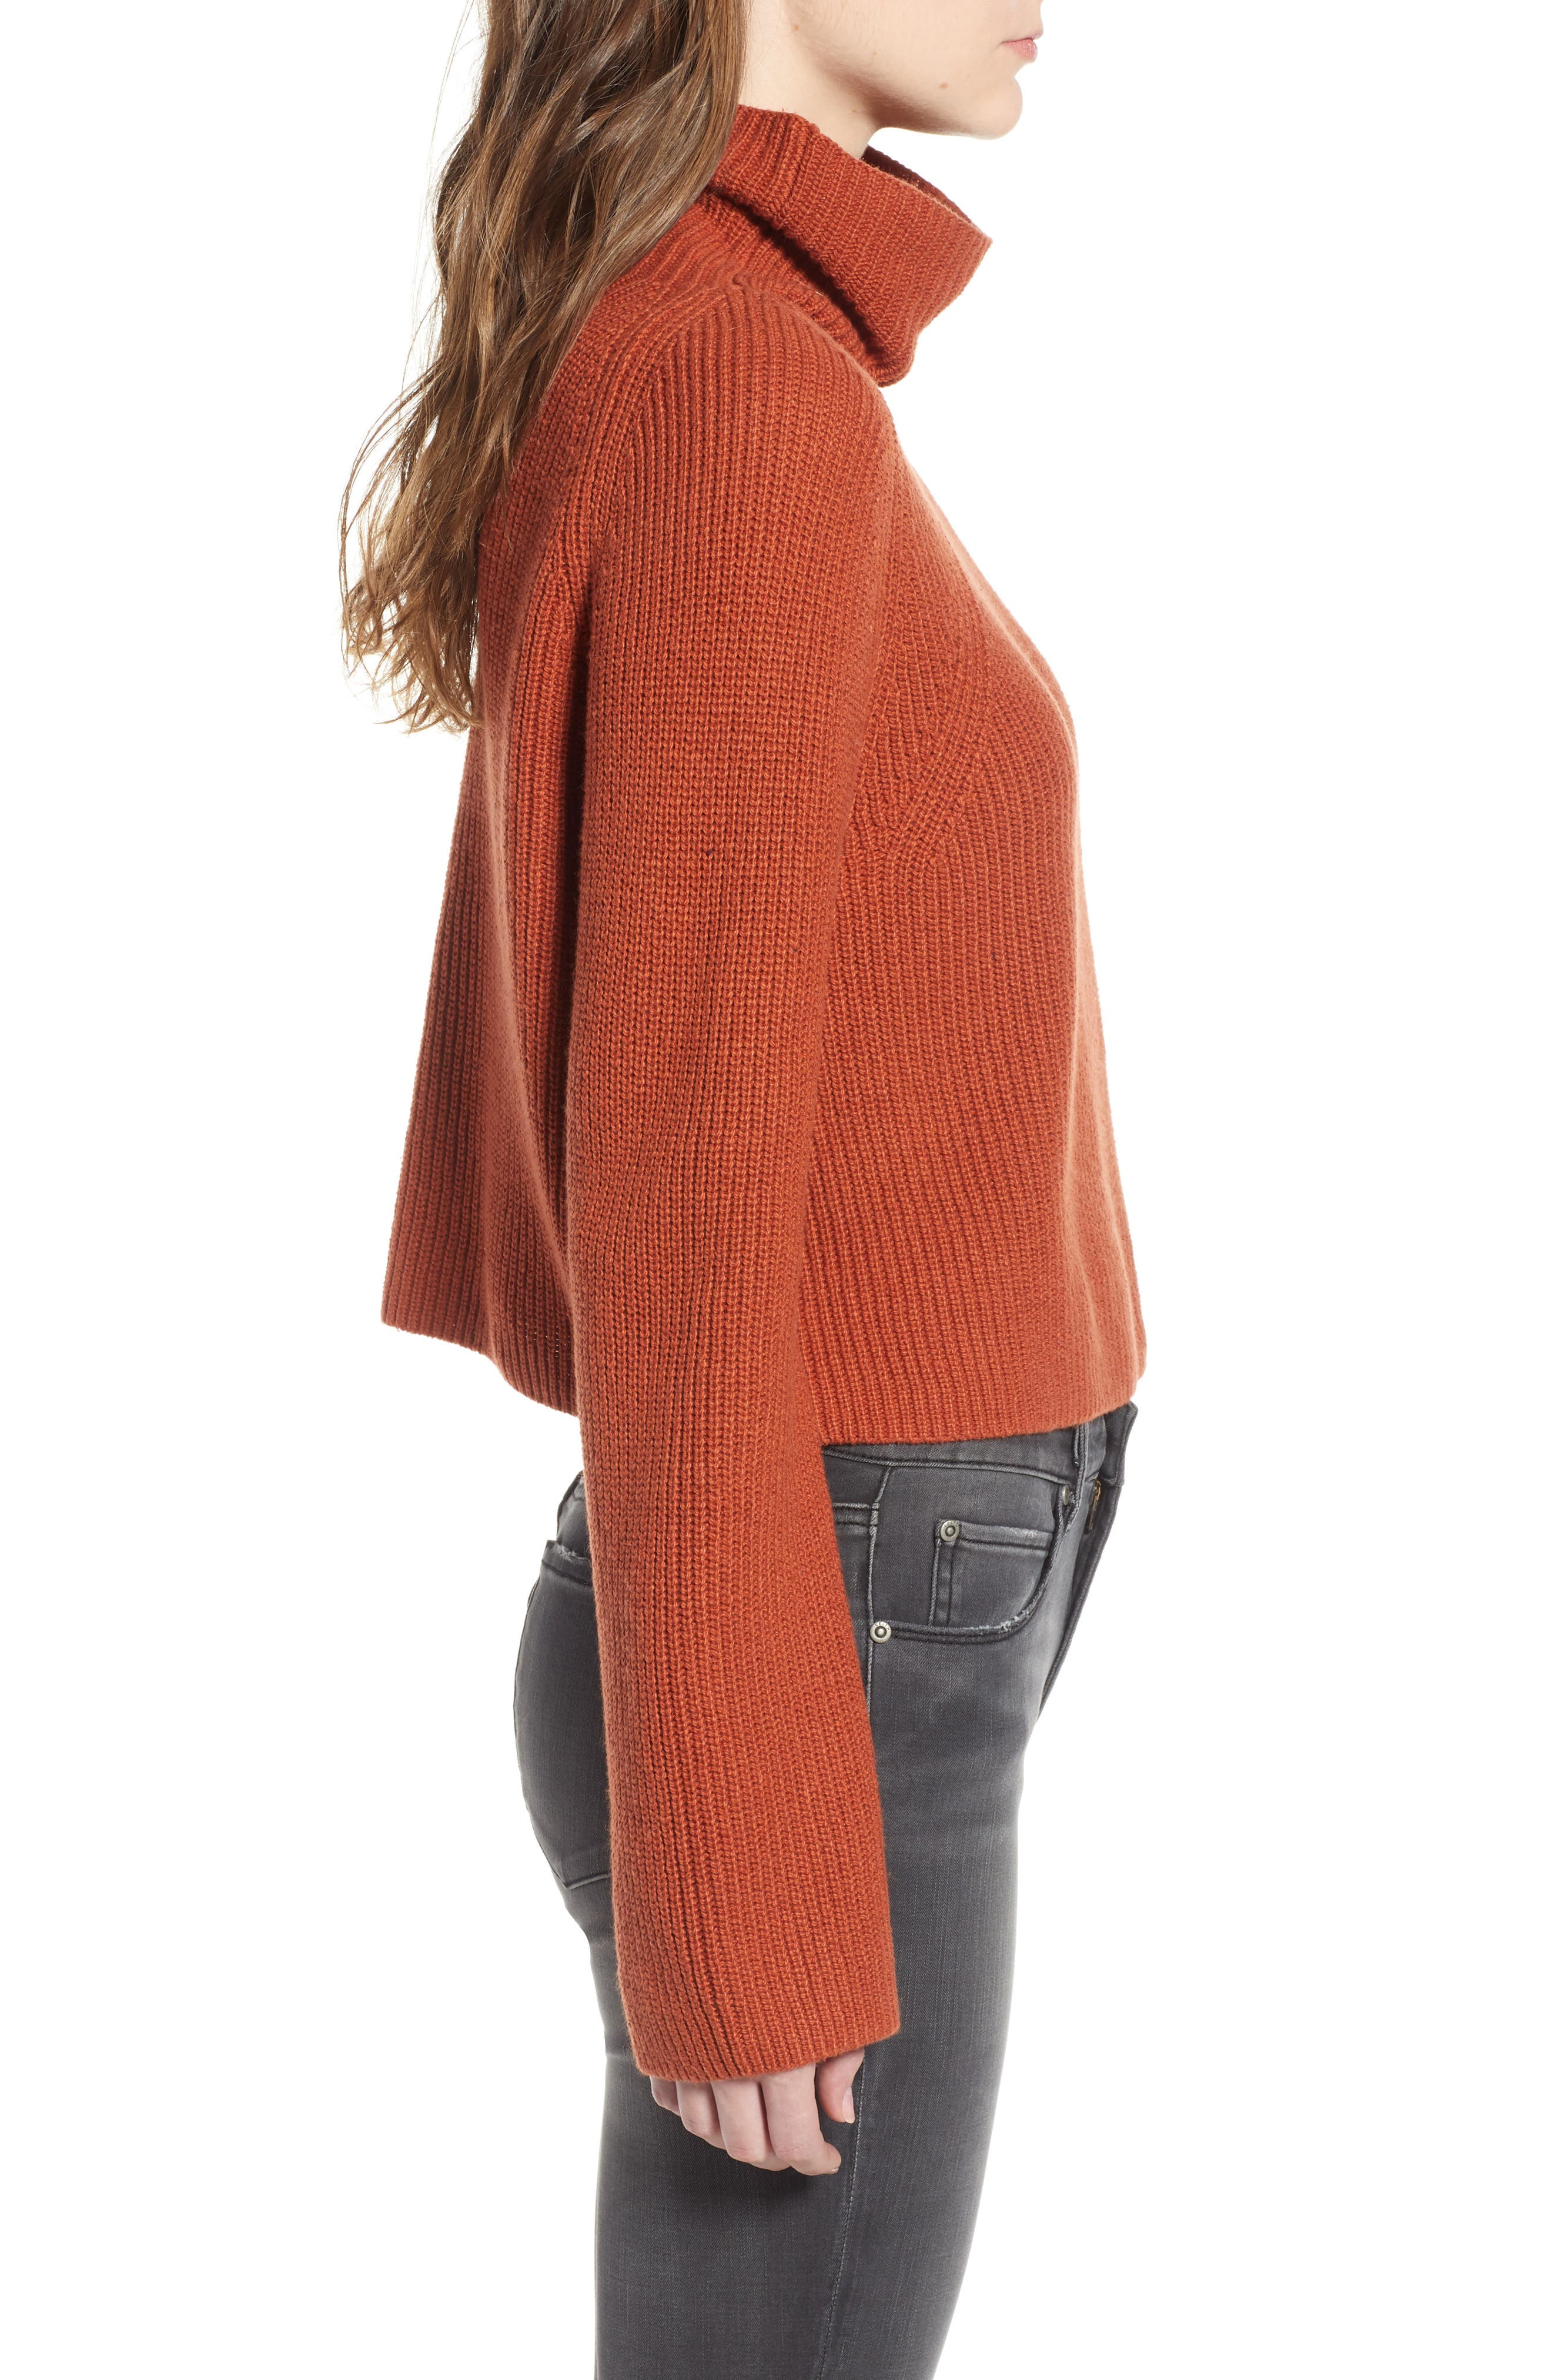 LEITH, Transfer Stitch Turtleneck Sweater, Alternate thumbnail 3, color, 210